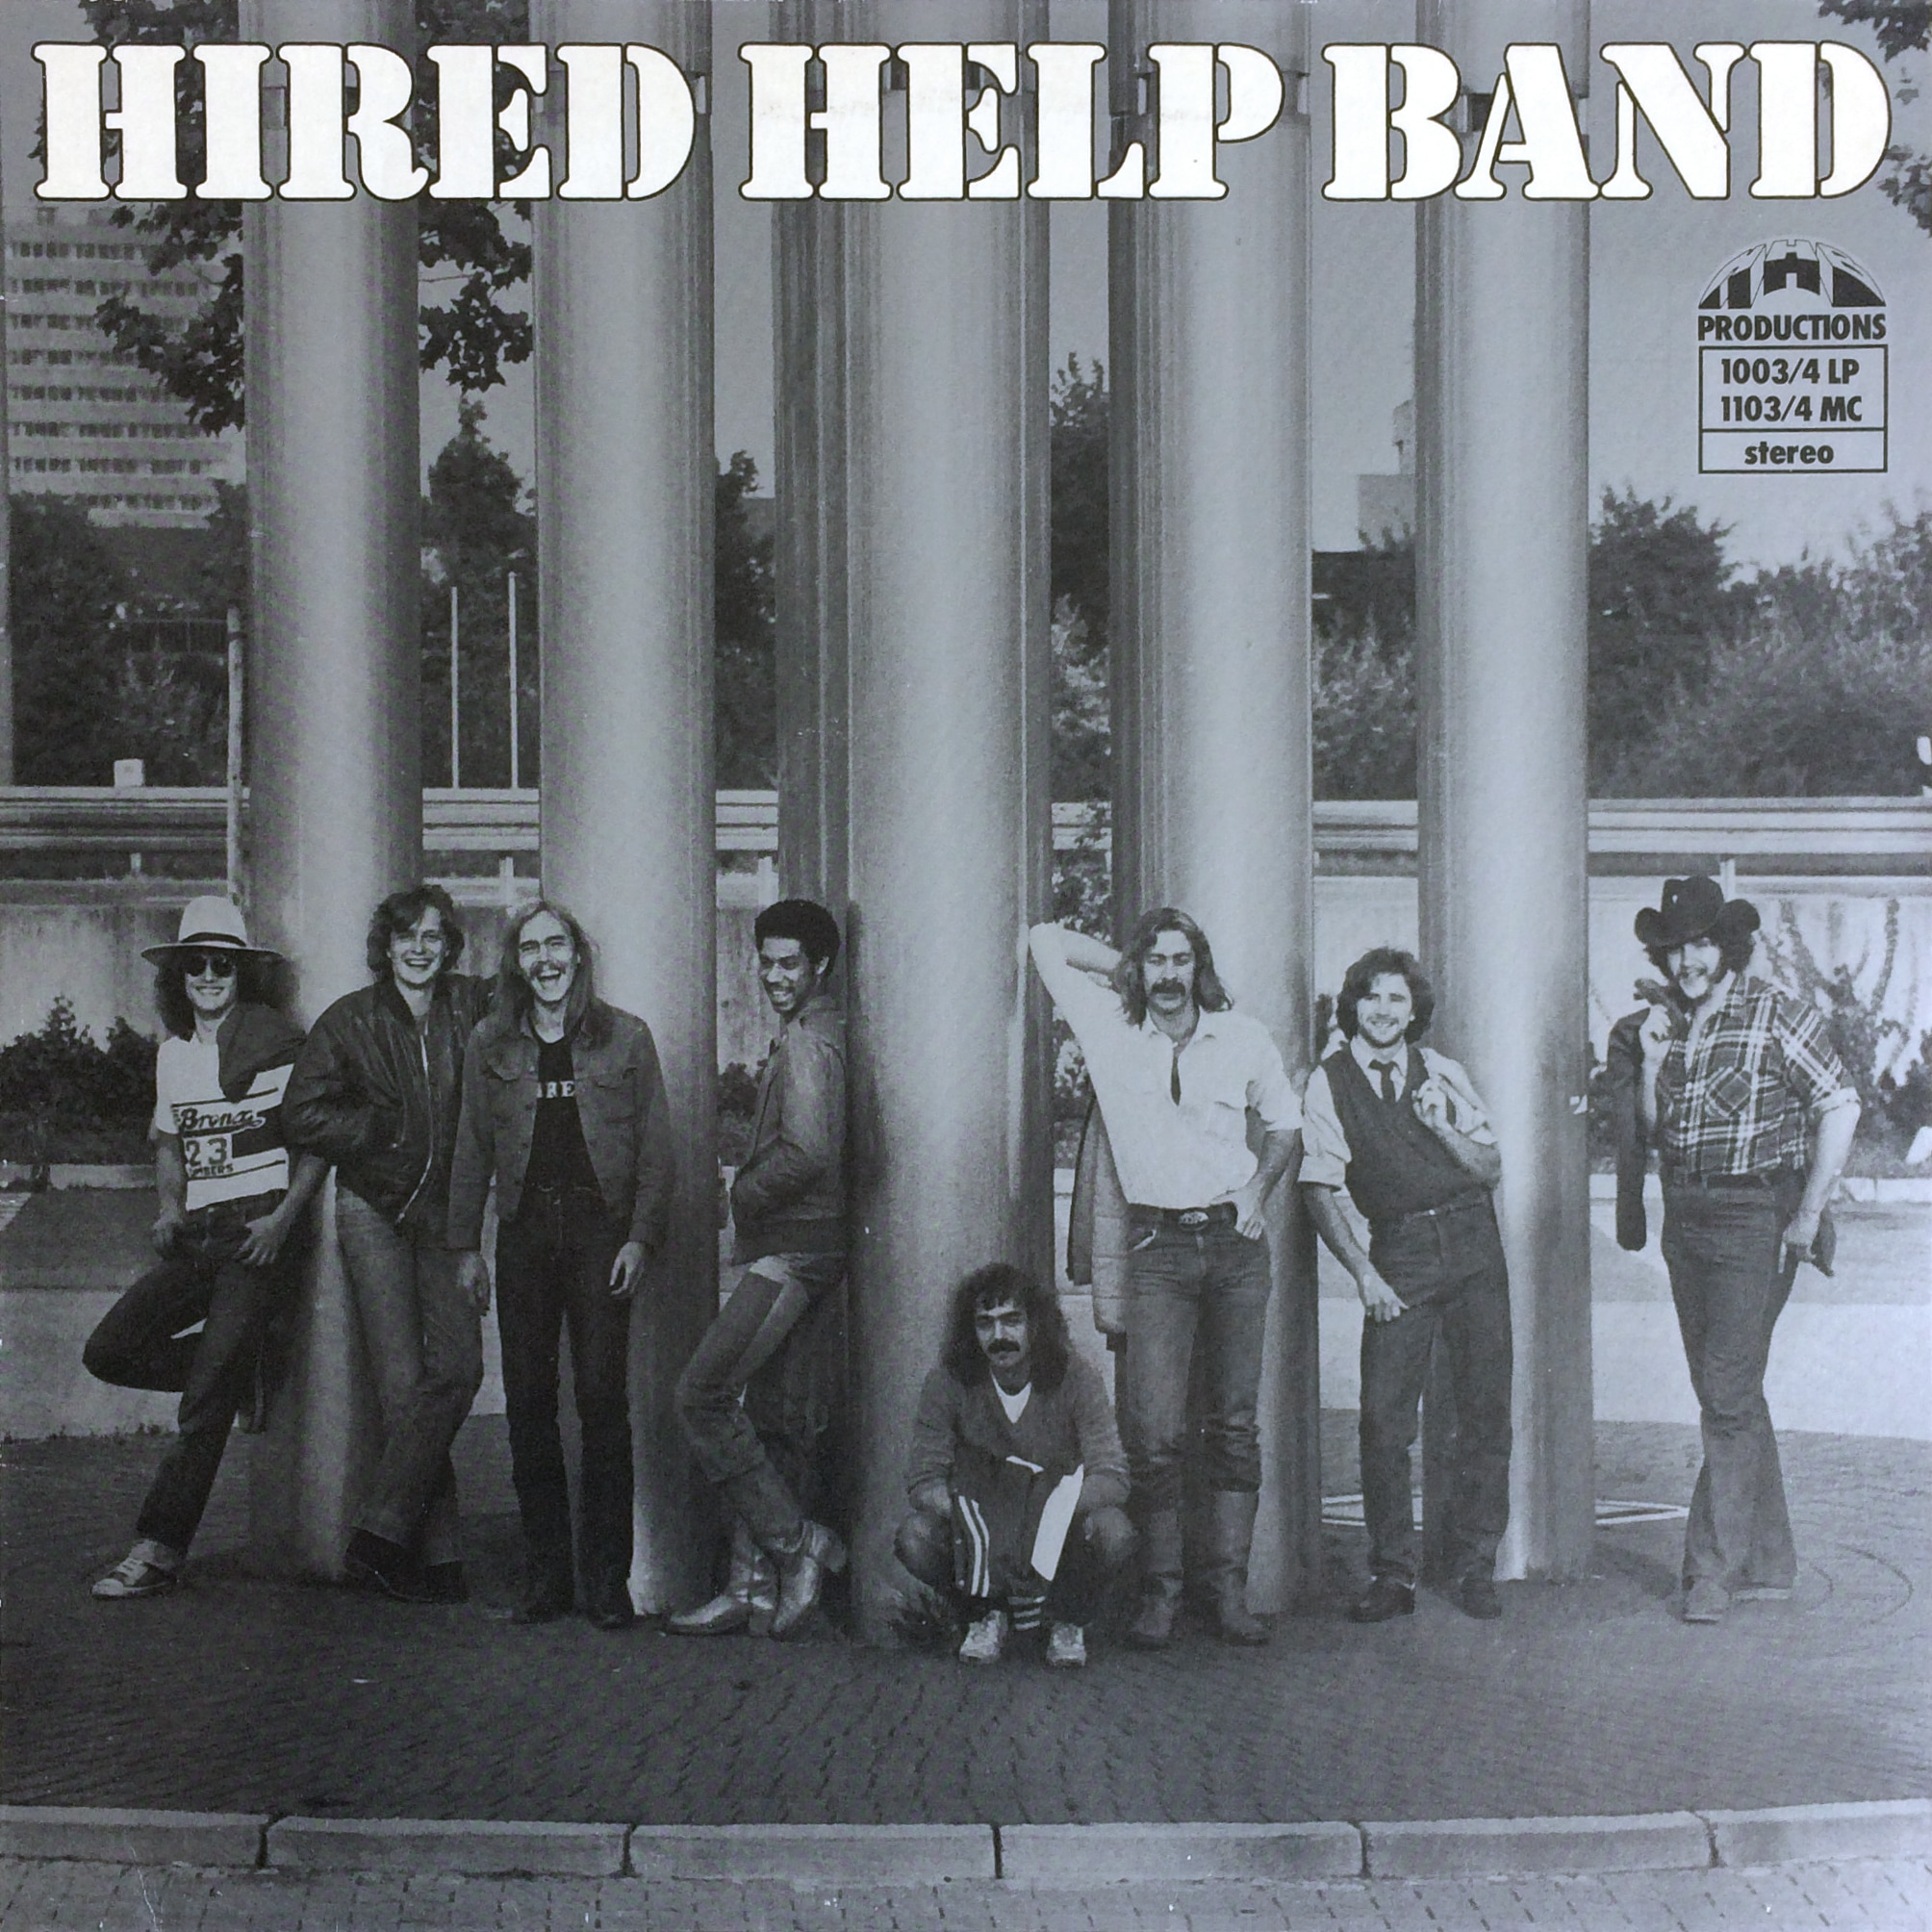 Hired Help Band HIRED HELP BAND – HHB Productions – 1003/4 LP Germany 1980